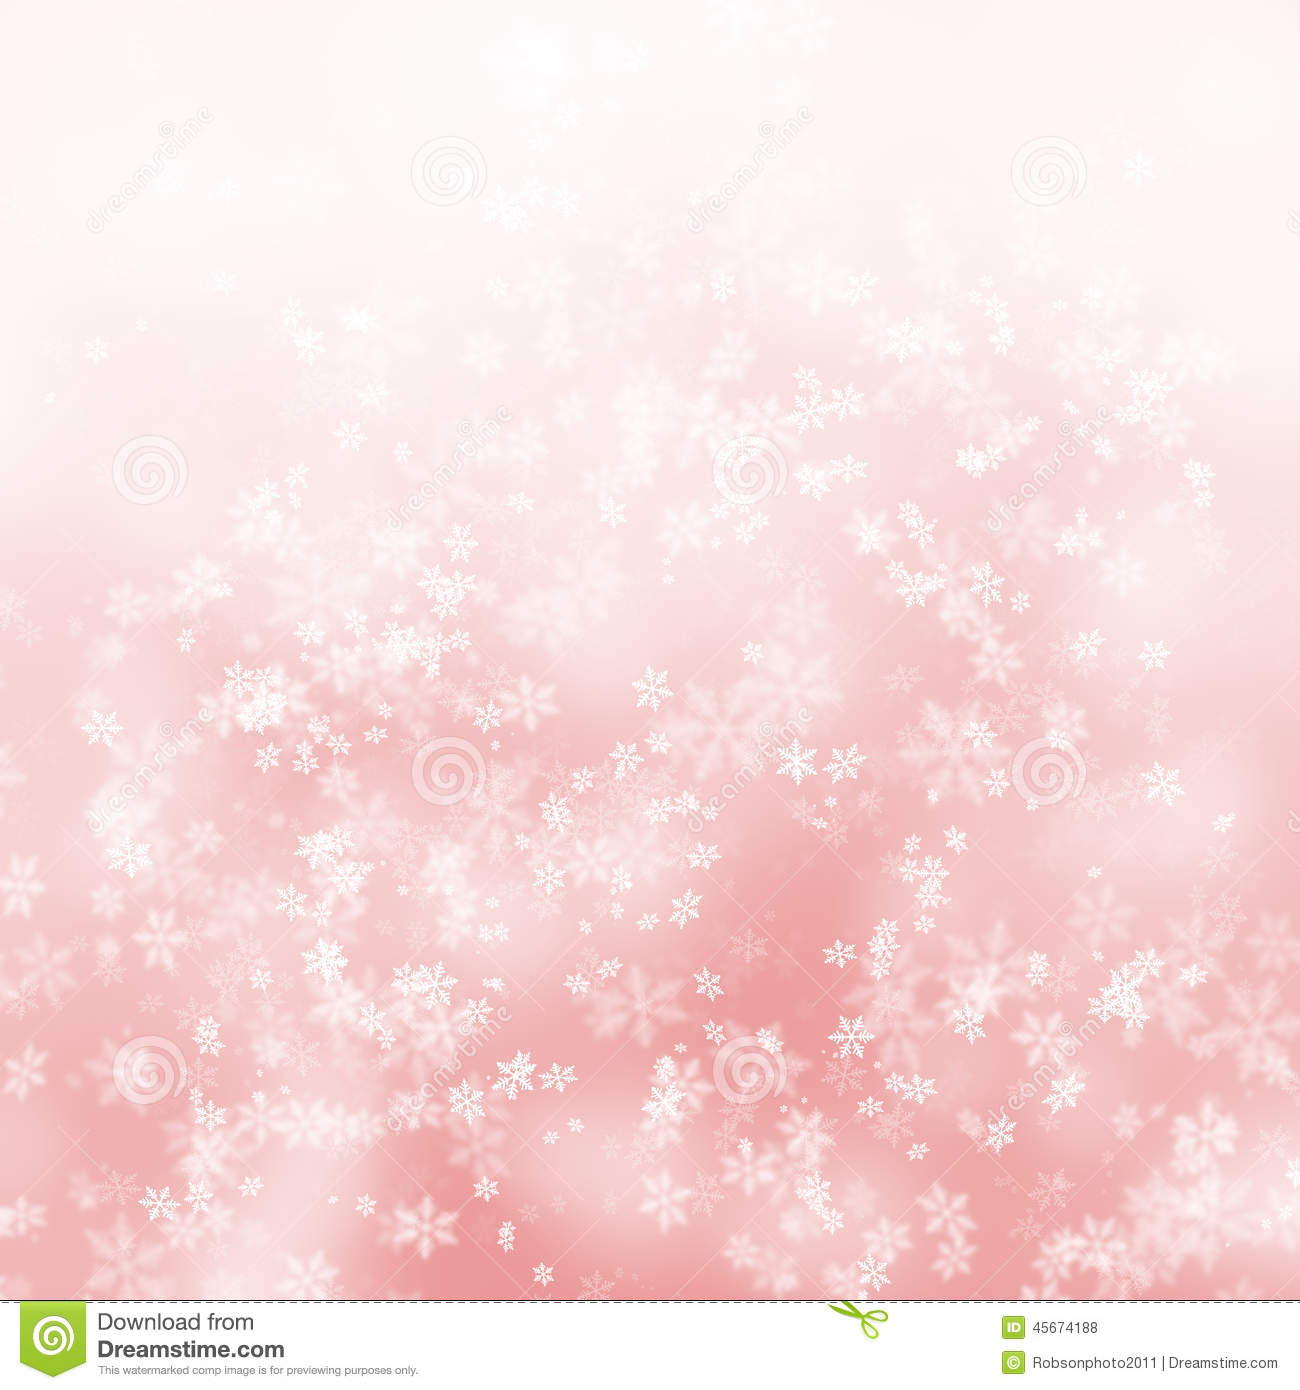 simple abstract snowflake background stock illustration